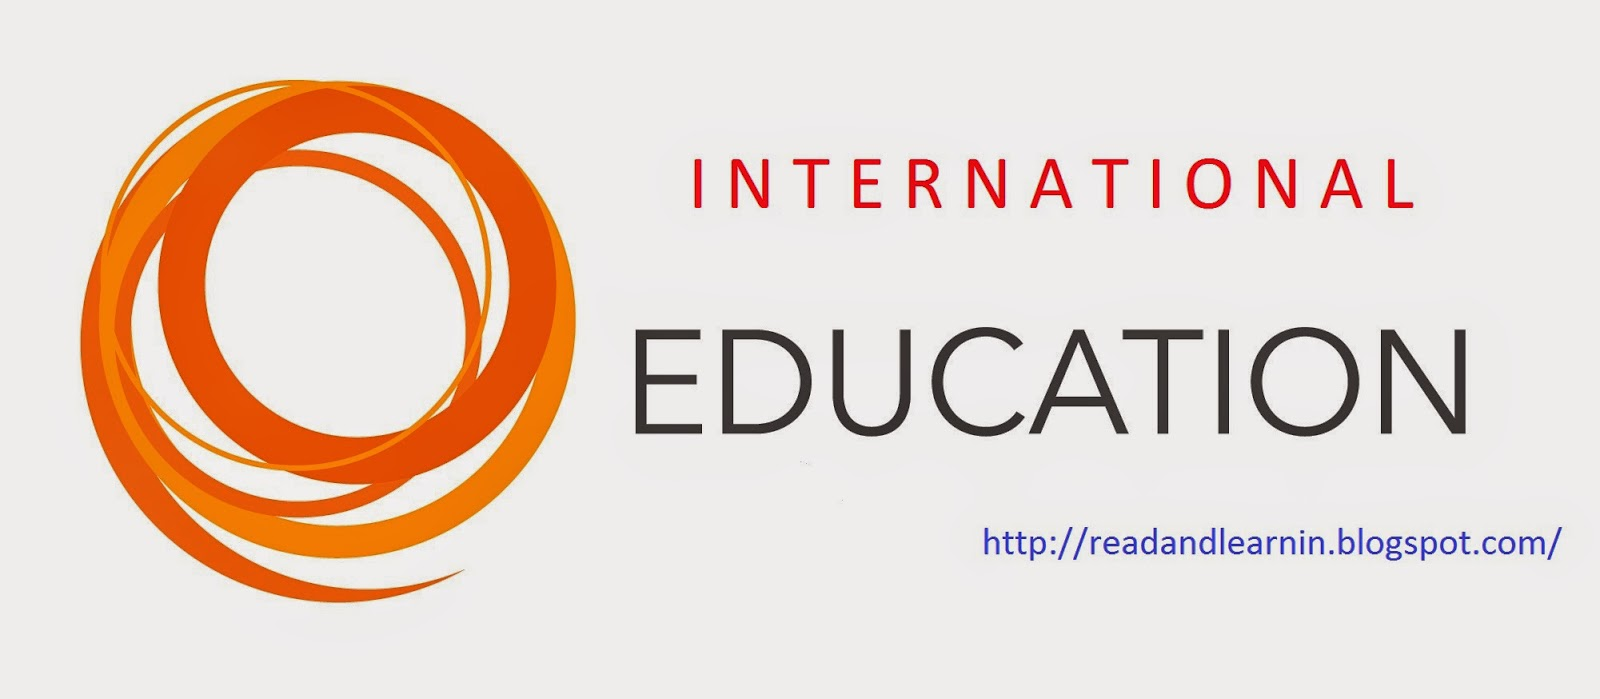 international education Serving as an umbrella for the university's many international initiatives, programs, and events.